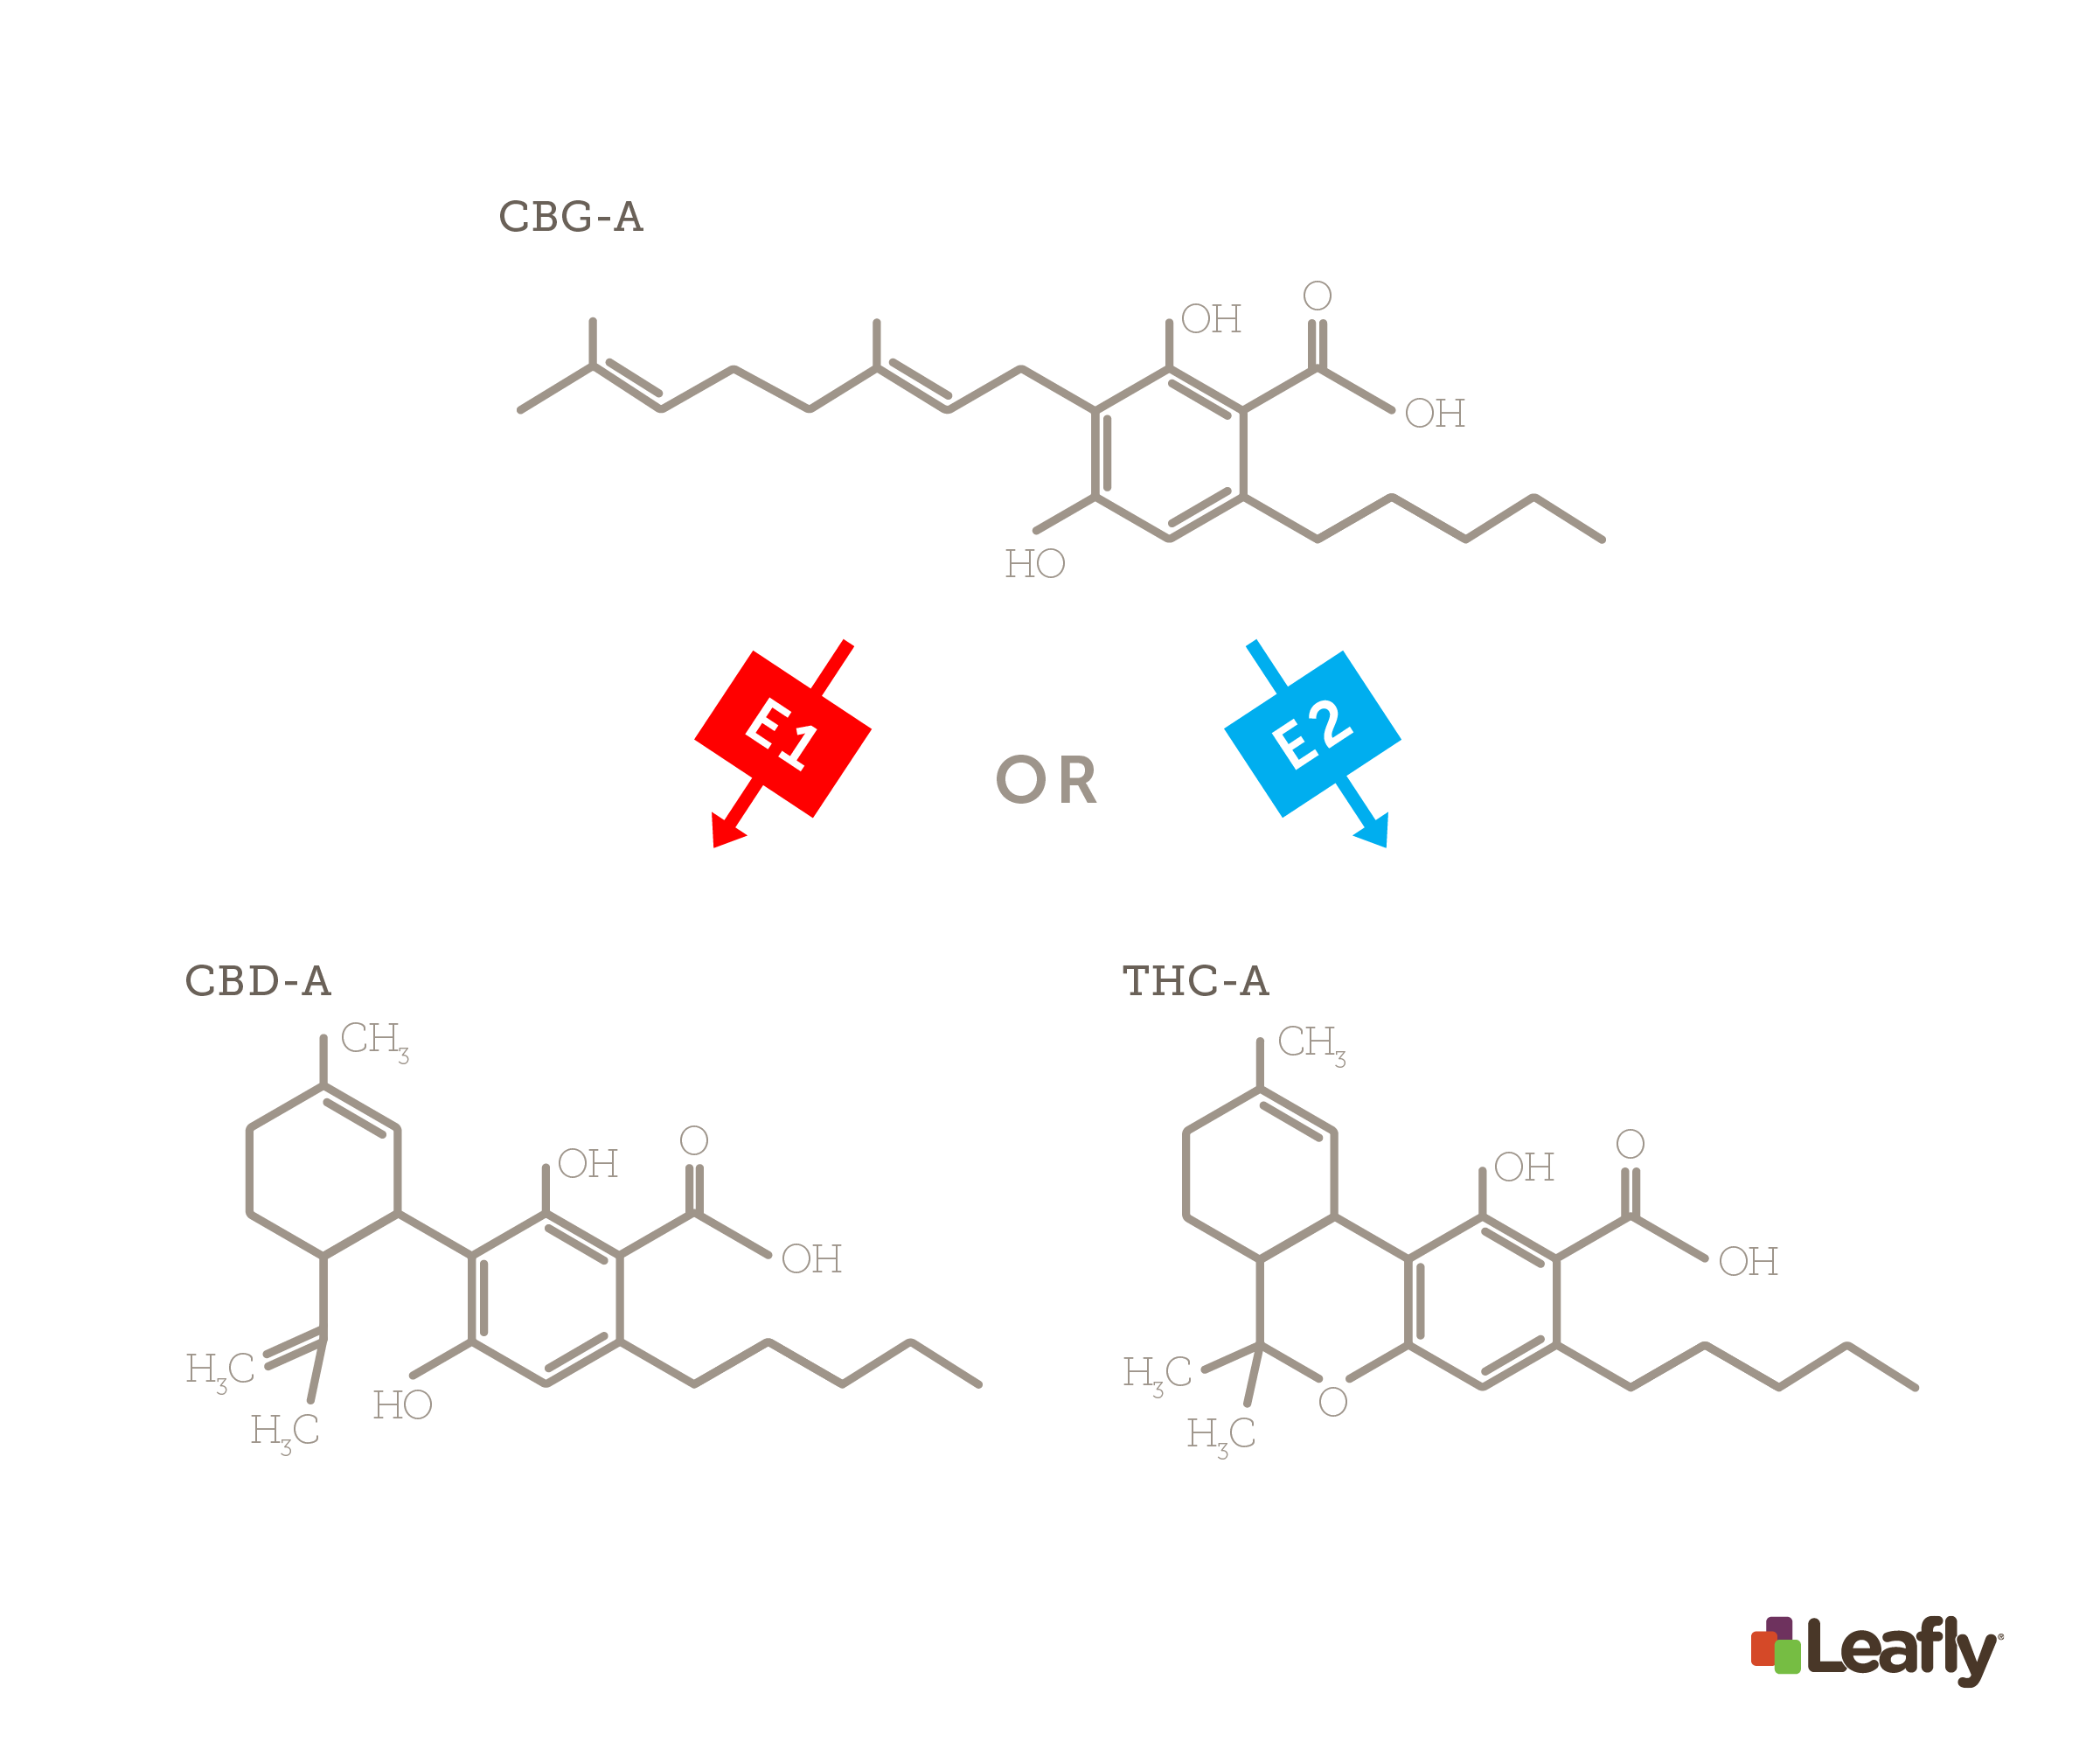 Chemical structures of CBGA going to CBDA or THCA